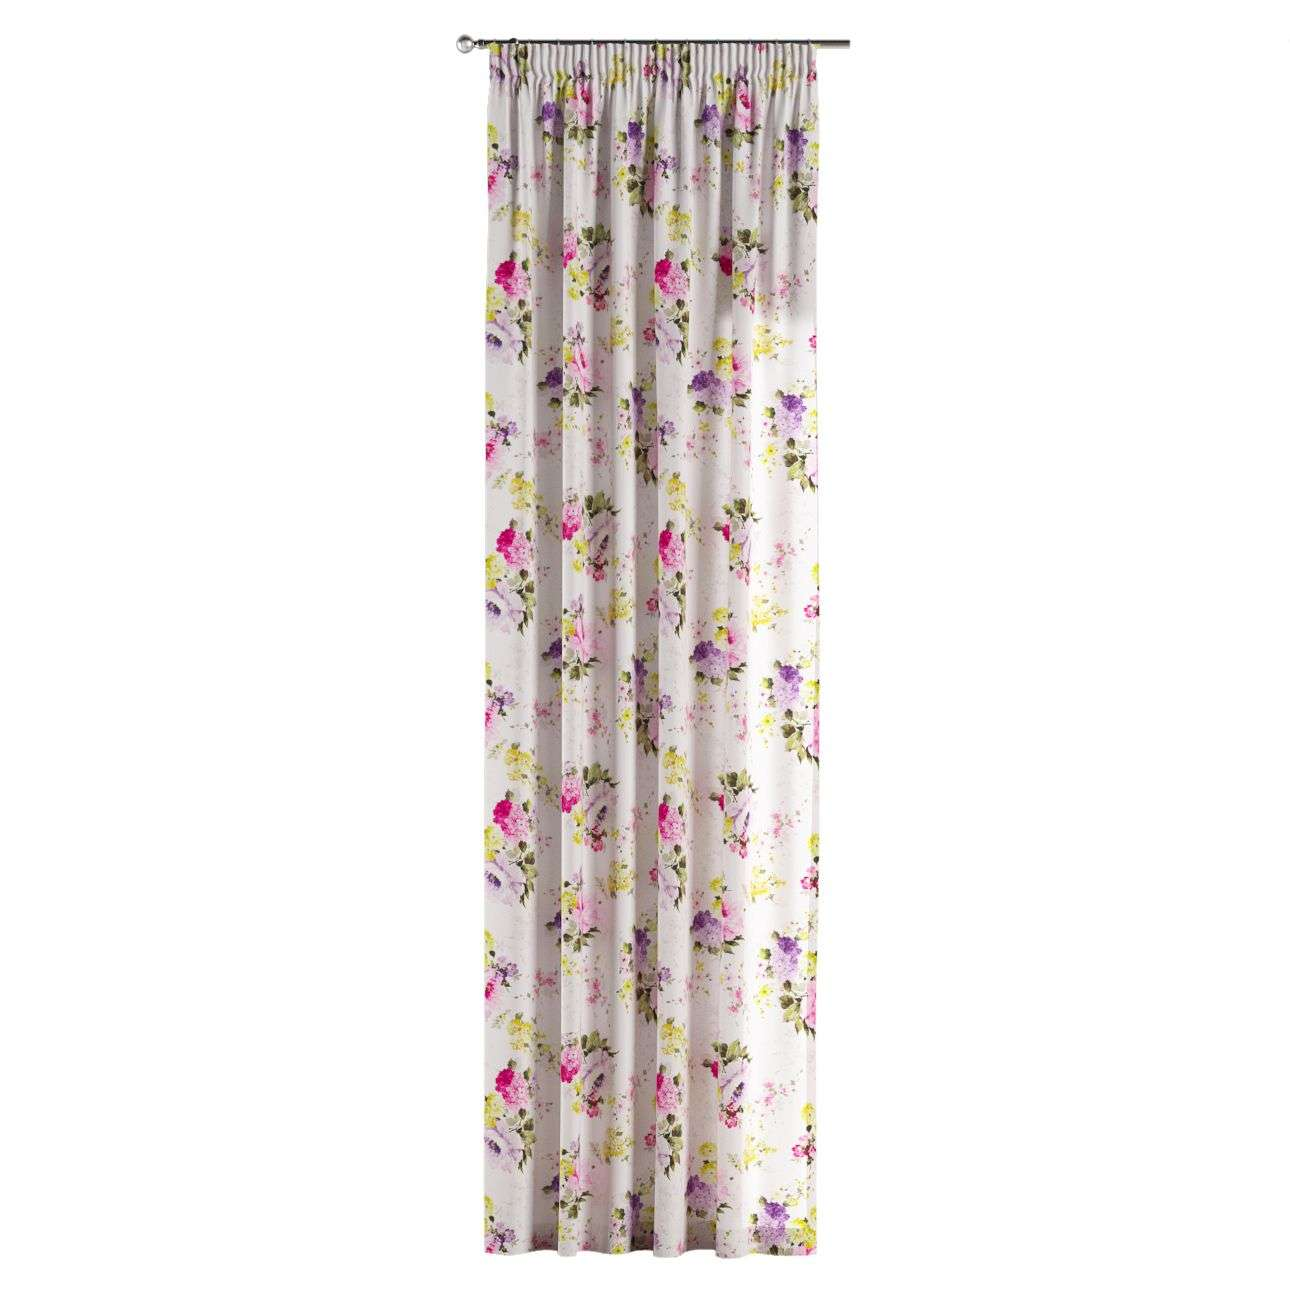 Pencil pleat curtains 130 x 260 cm (51 x 102 inch) in collection Monet, fabric: 140-00